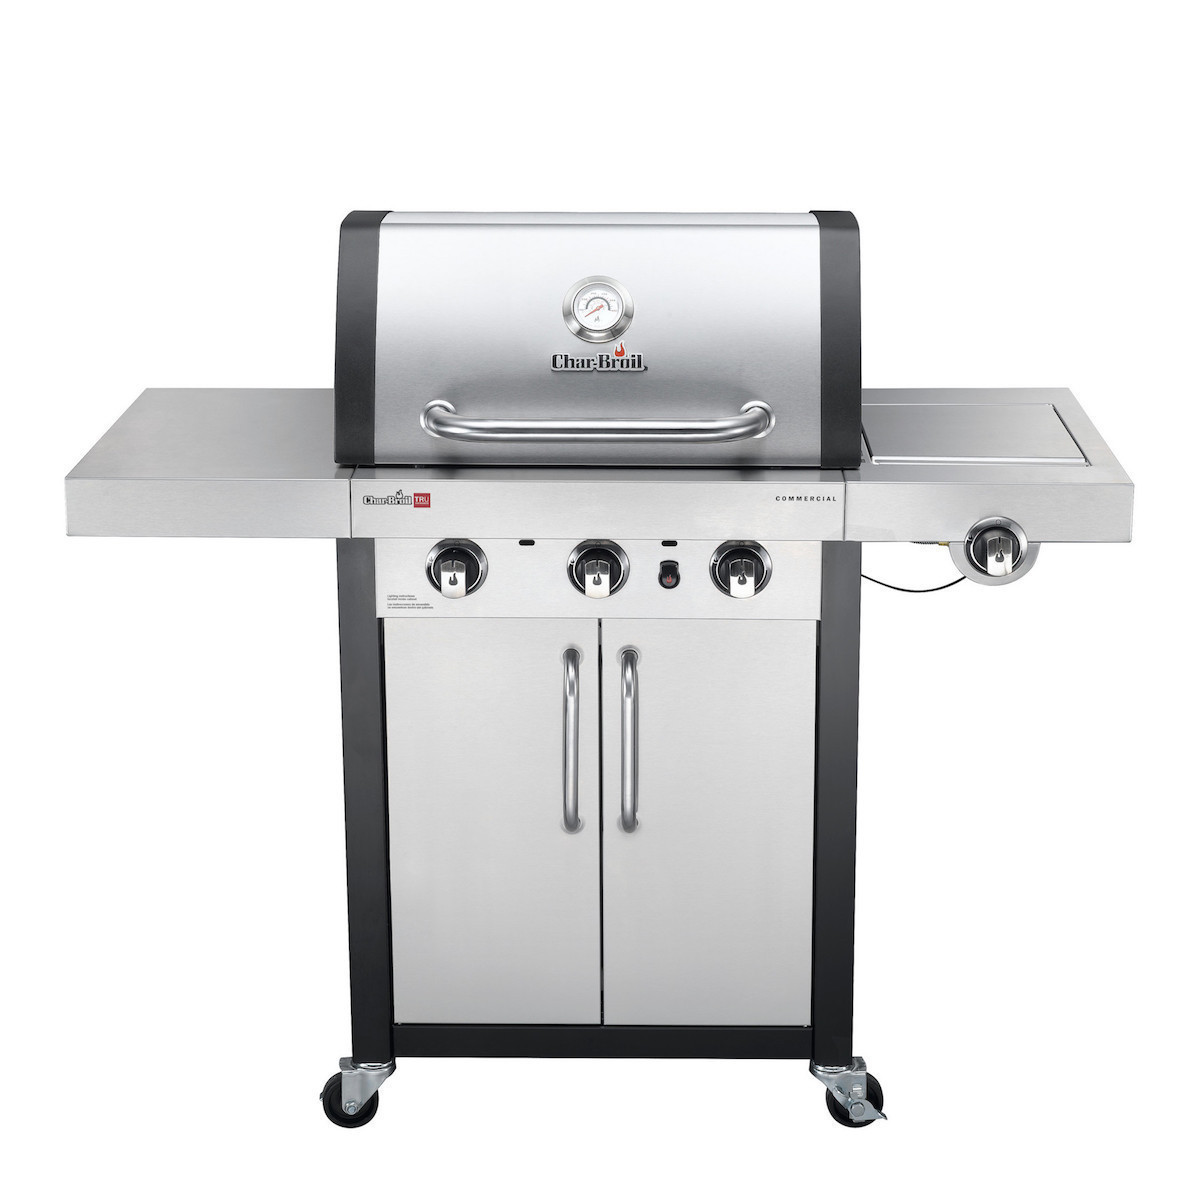 Char-broil_commercial_series_3_burner